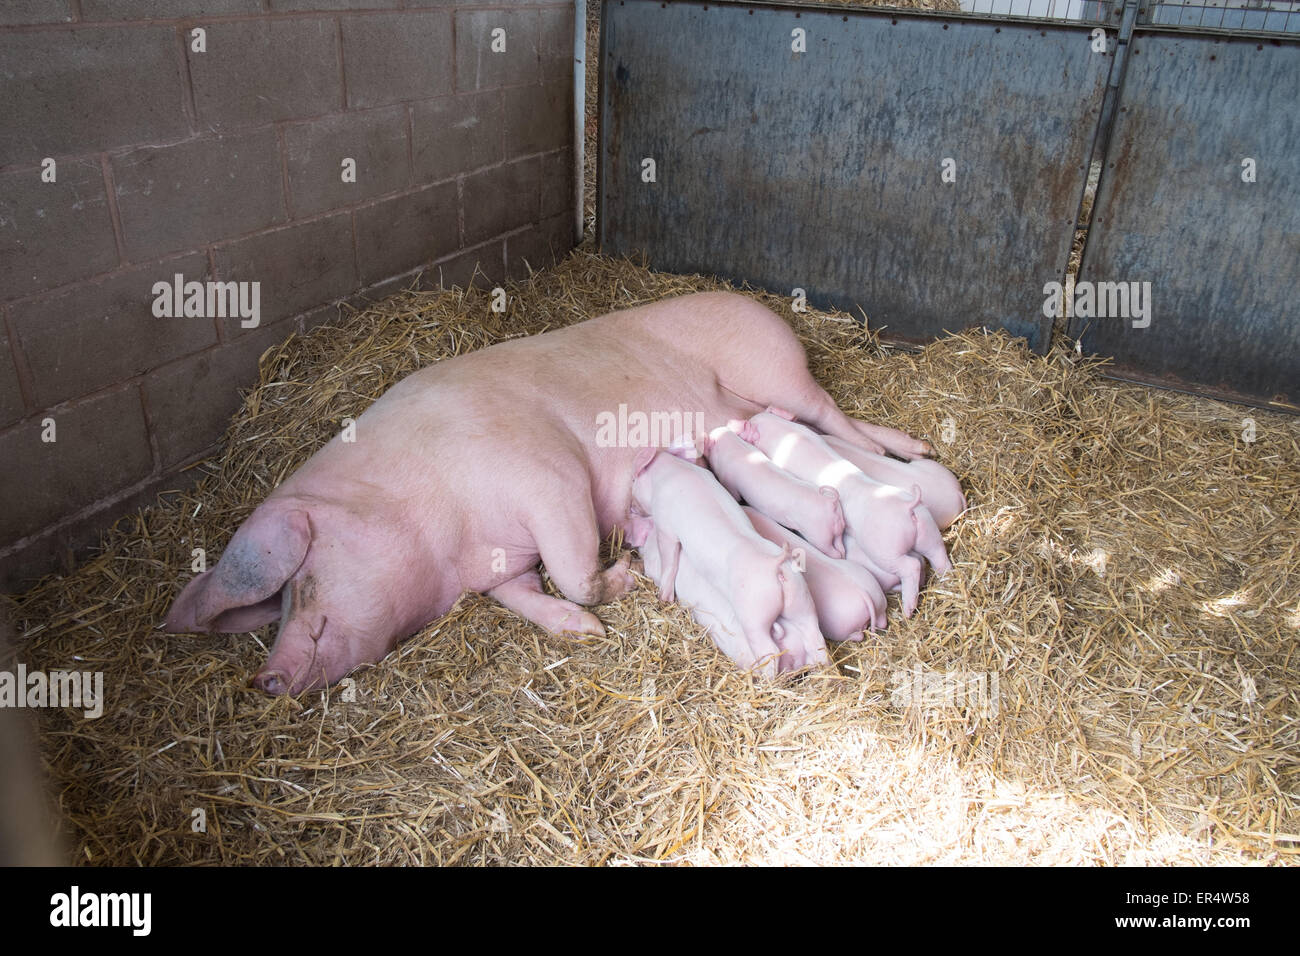 Piglets feeding from a sow in a pen in Sandwell Birmingham - Stock Image